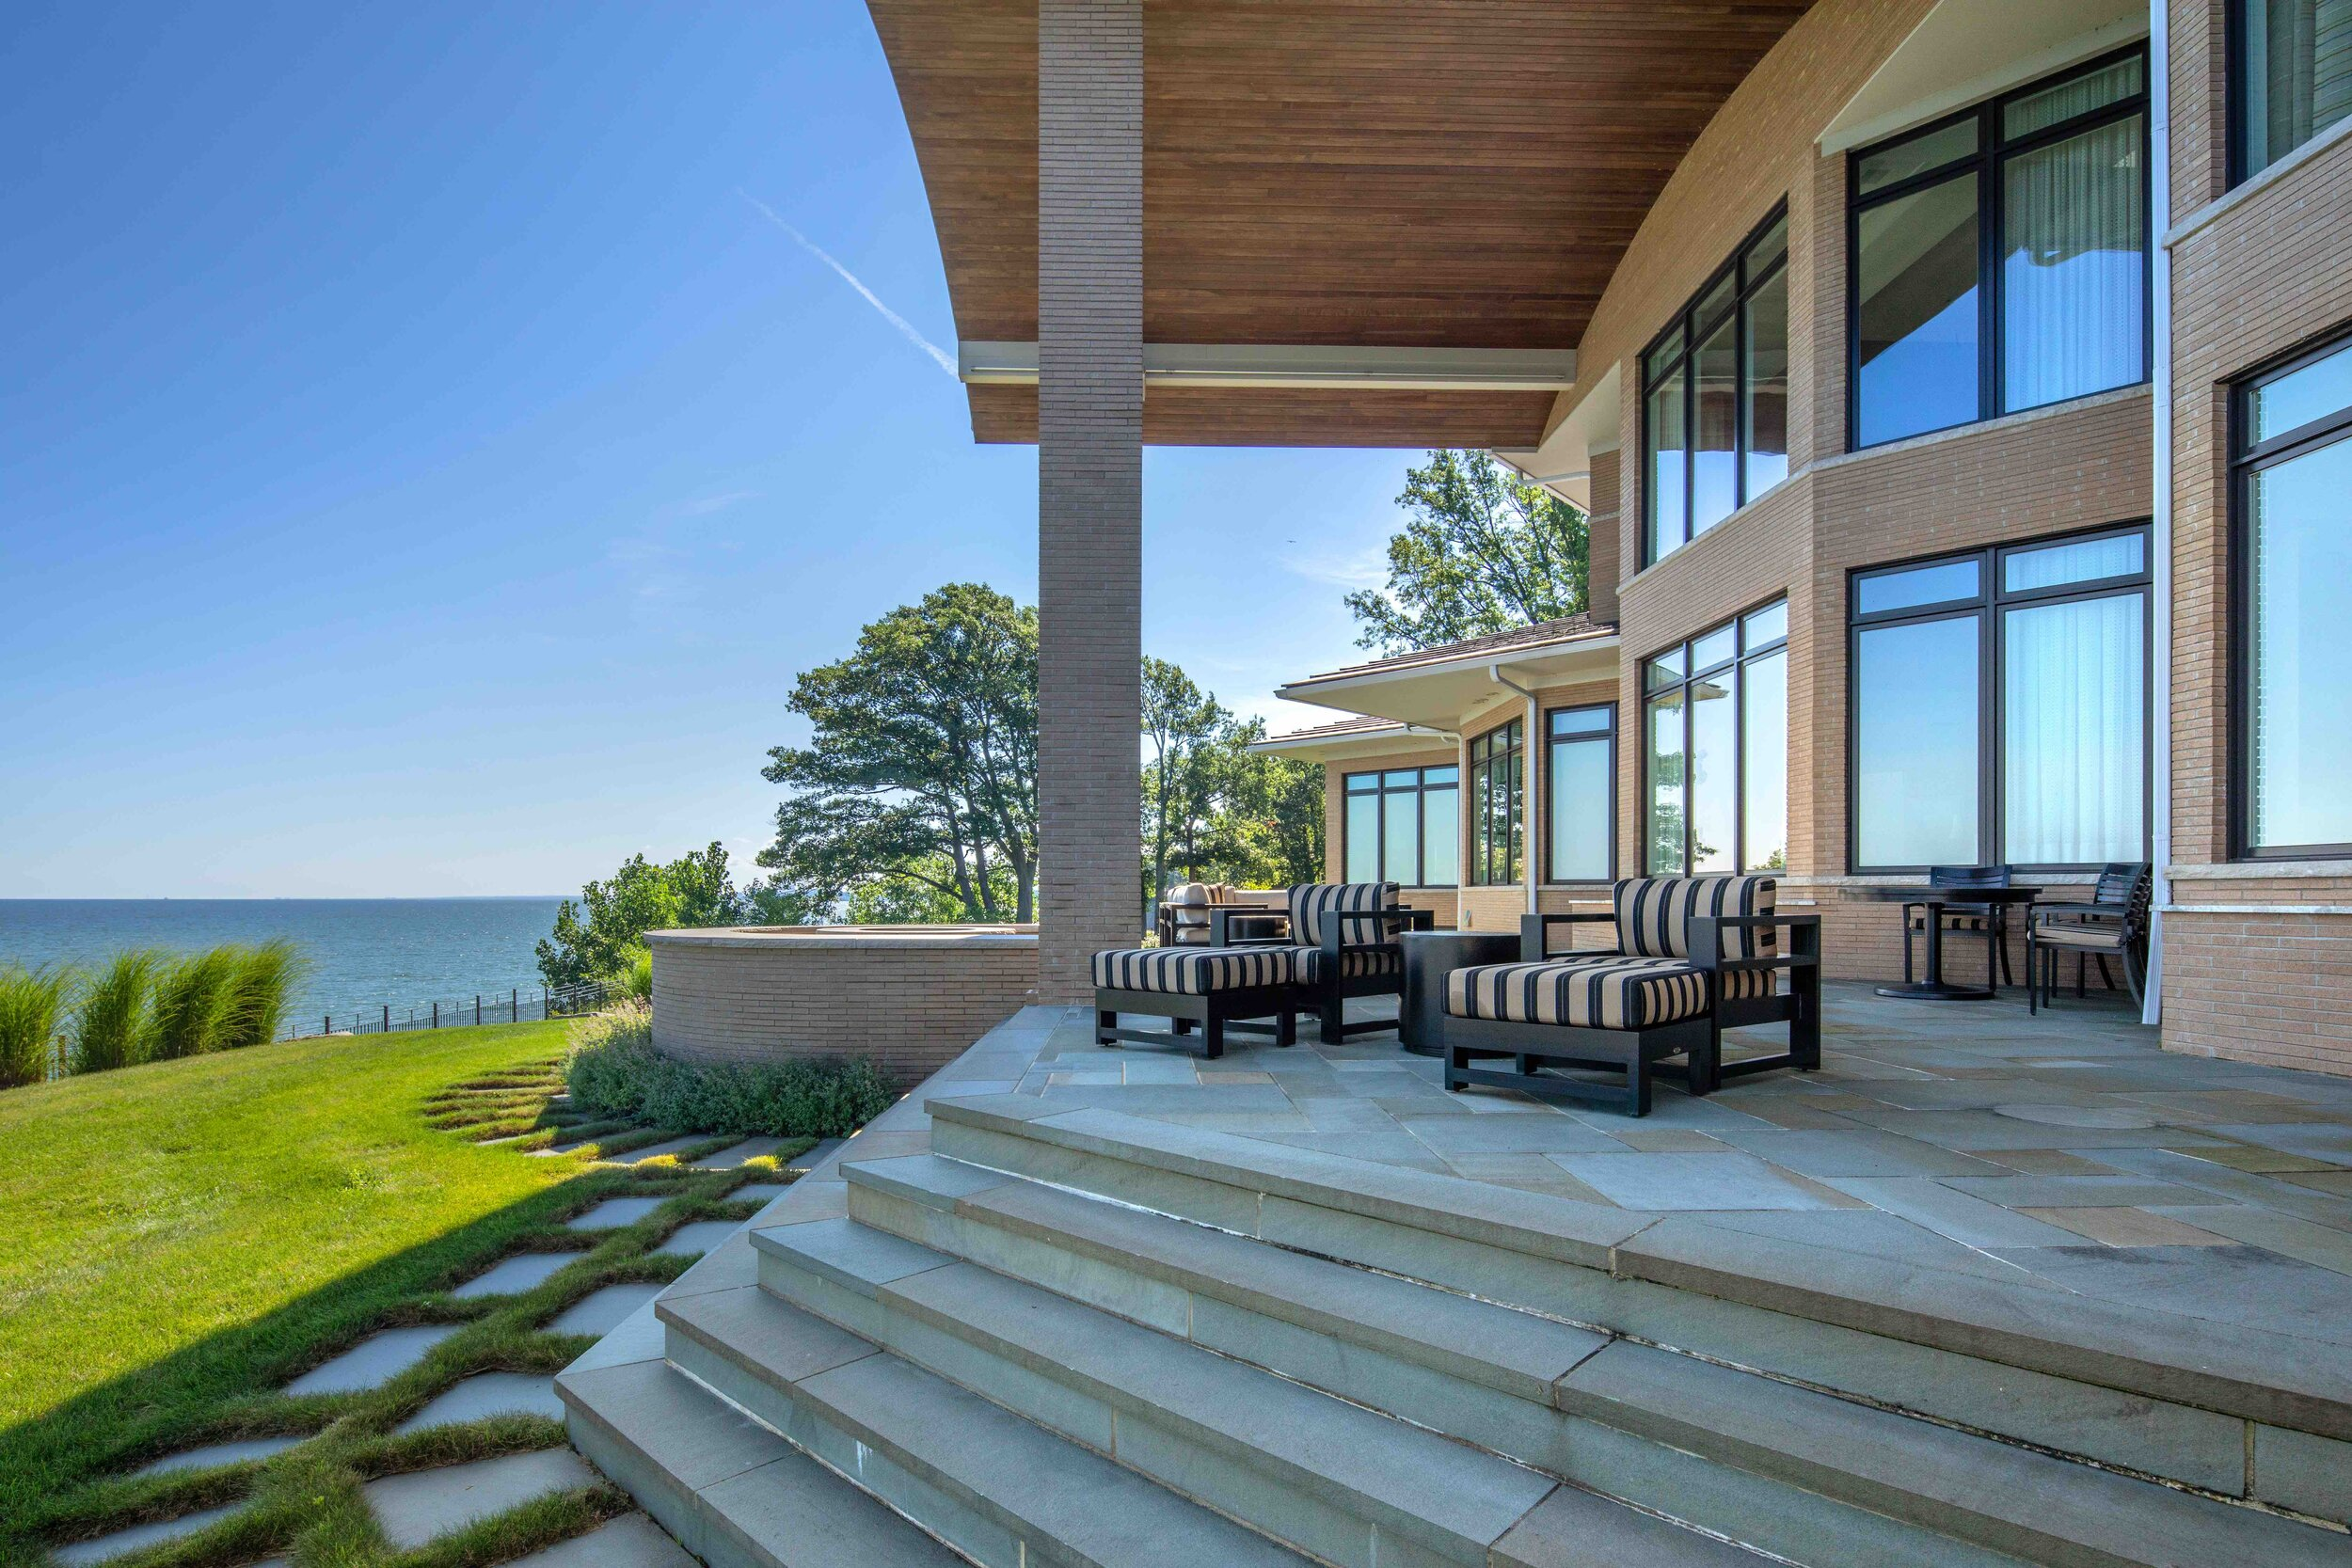 Can Safety & Security Film Protect Oklahoma Lake Homes From Severe Weather?